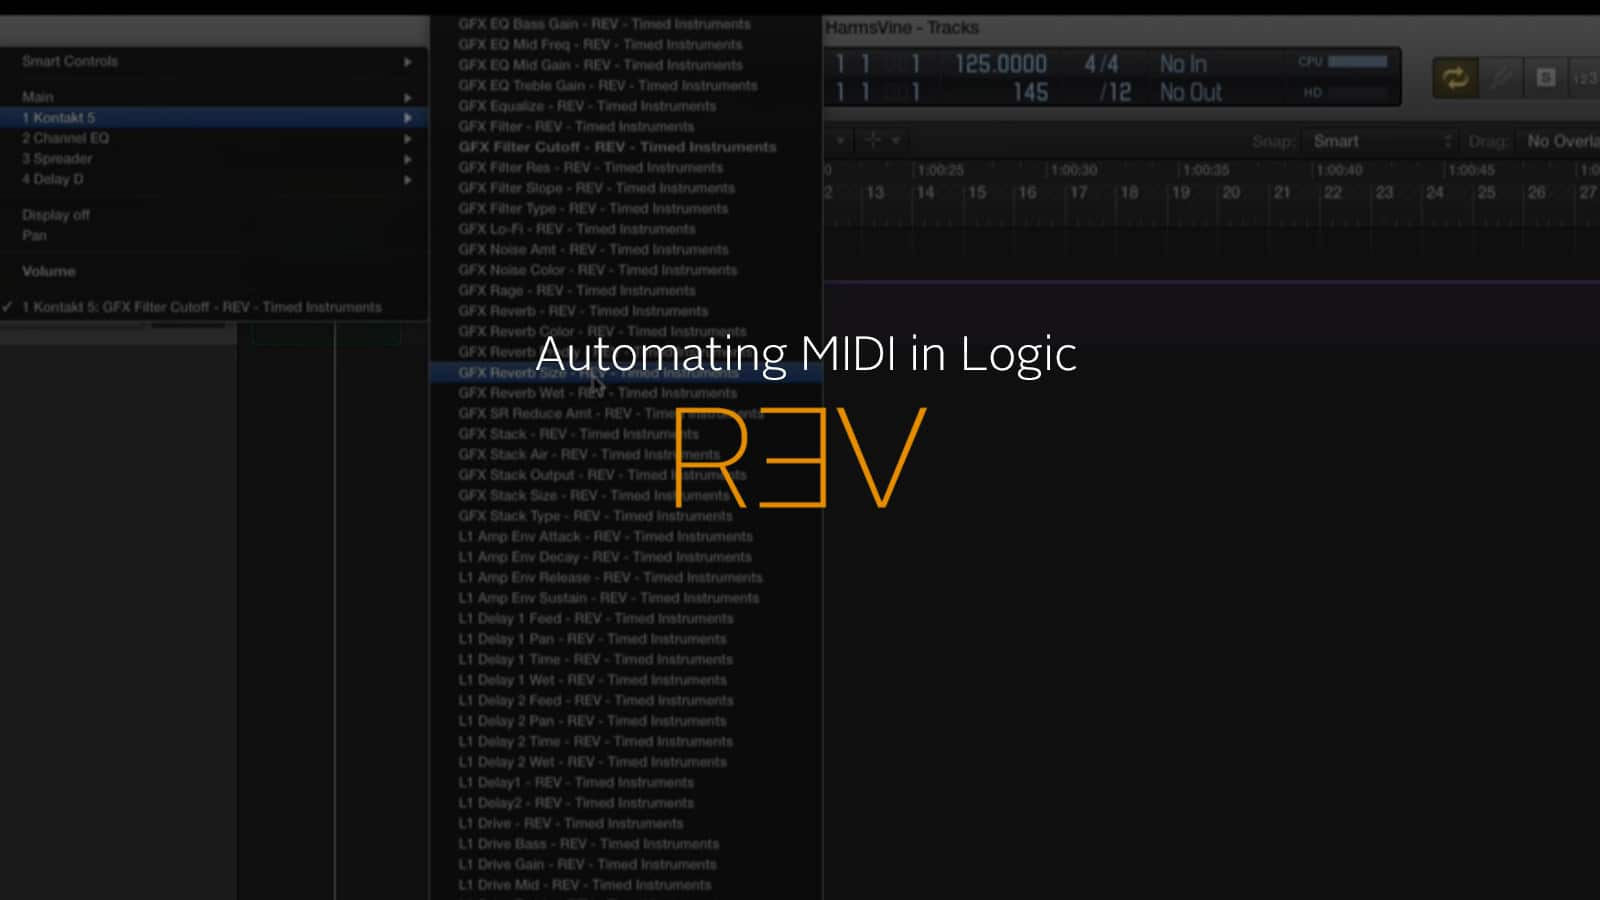 Automating MIDI in Logic with REV - Output